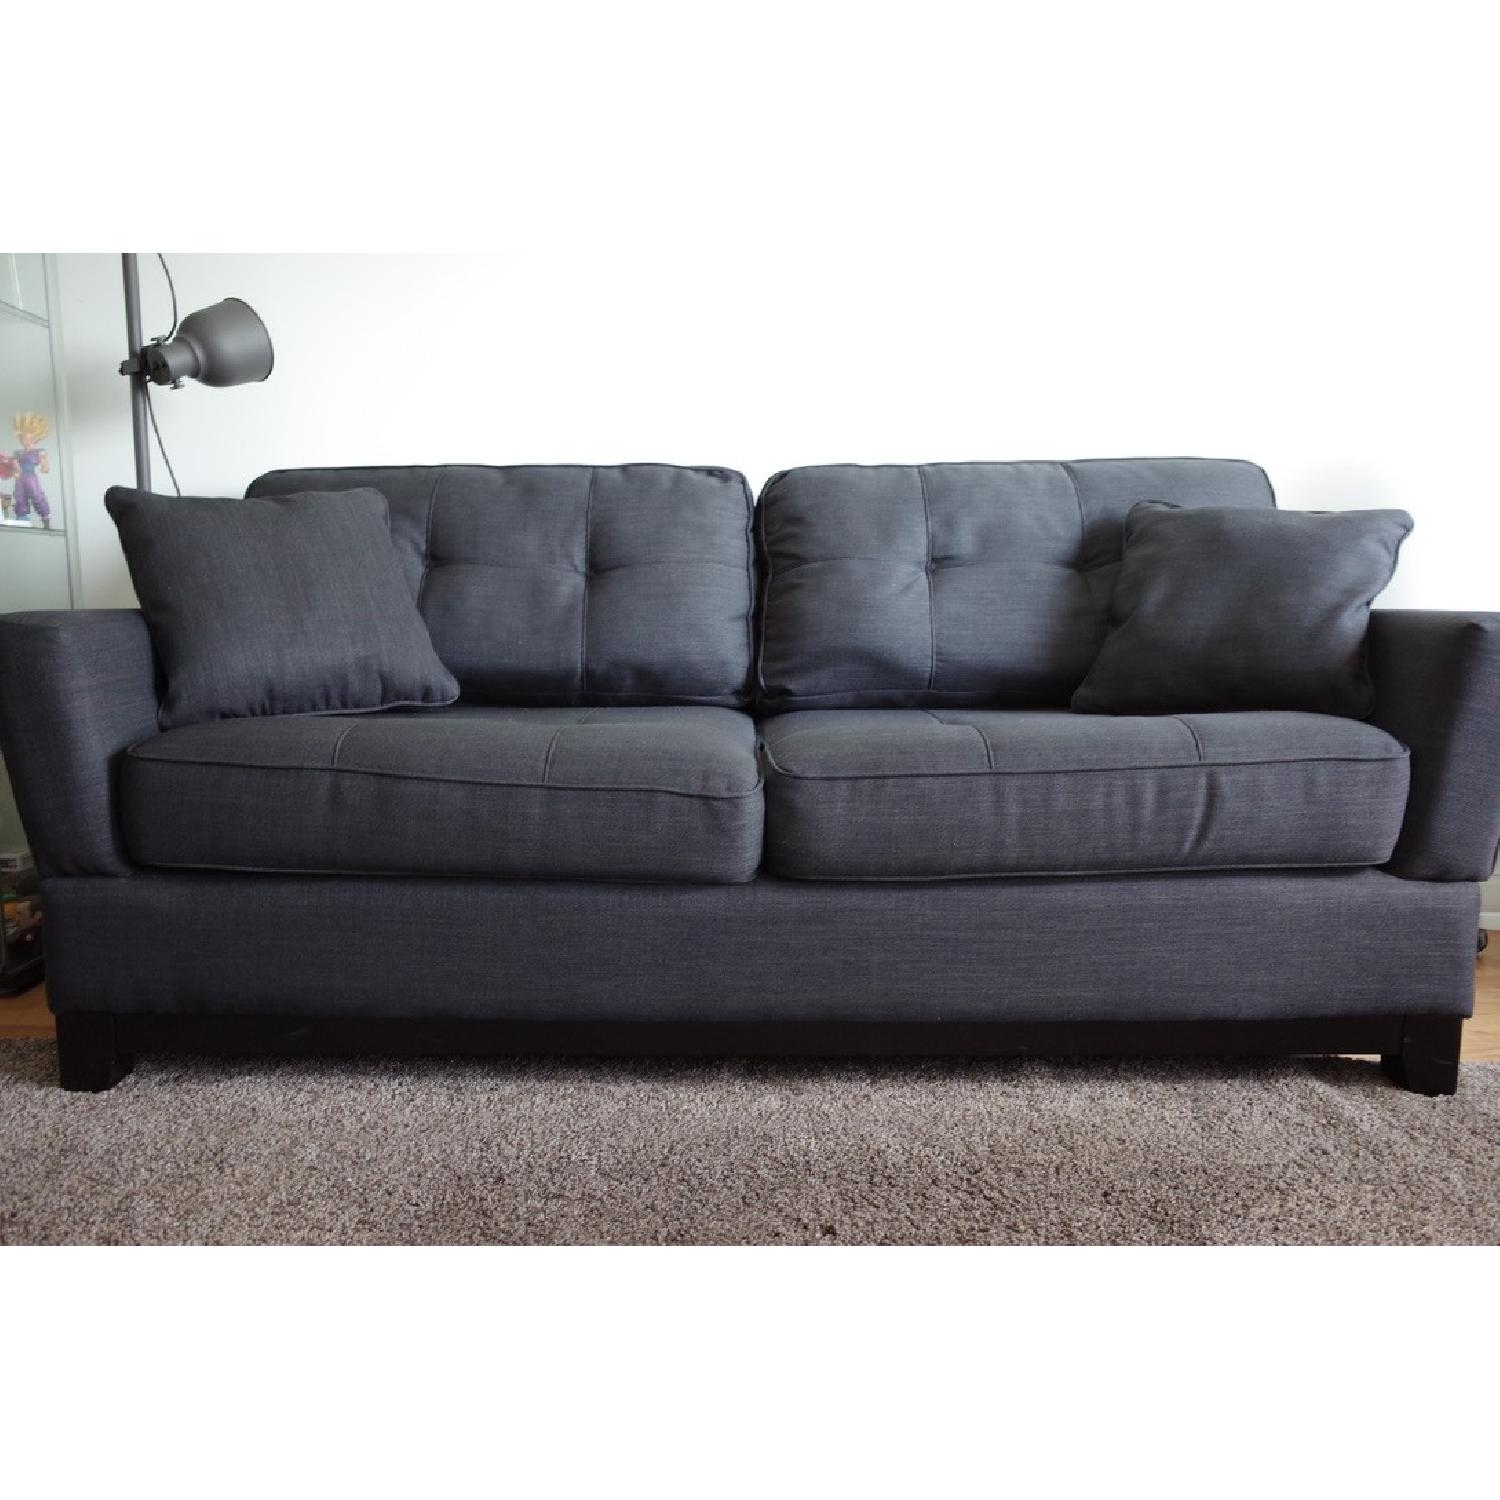 Jennifer Furniture Opus Sofa-0